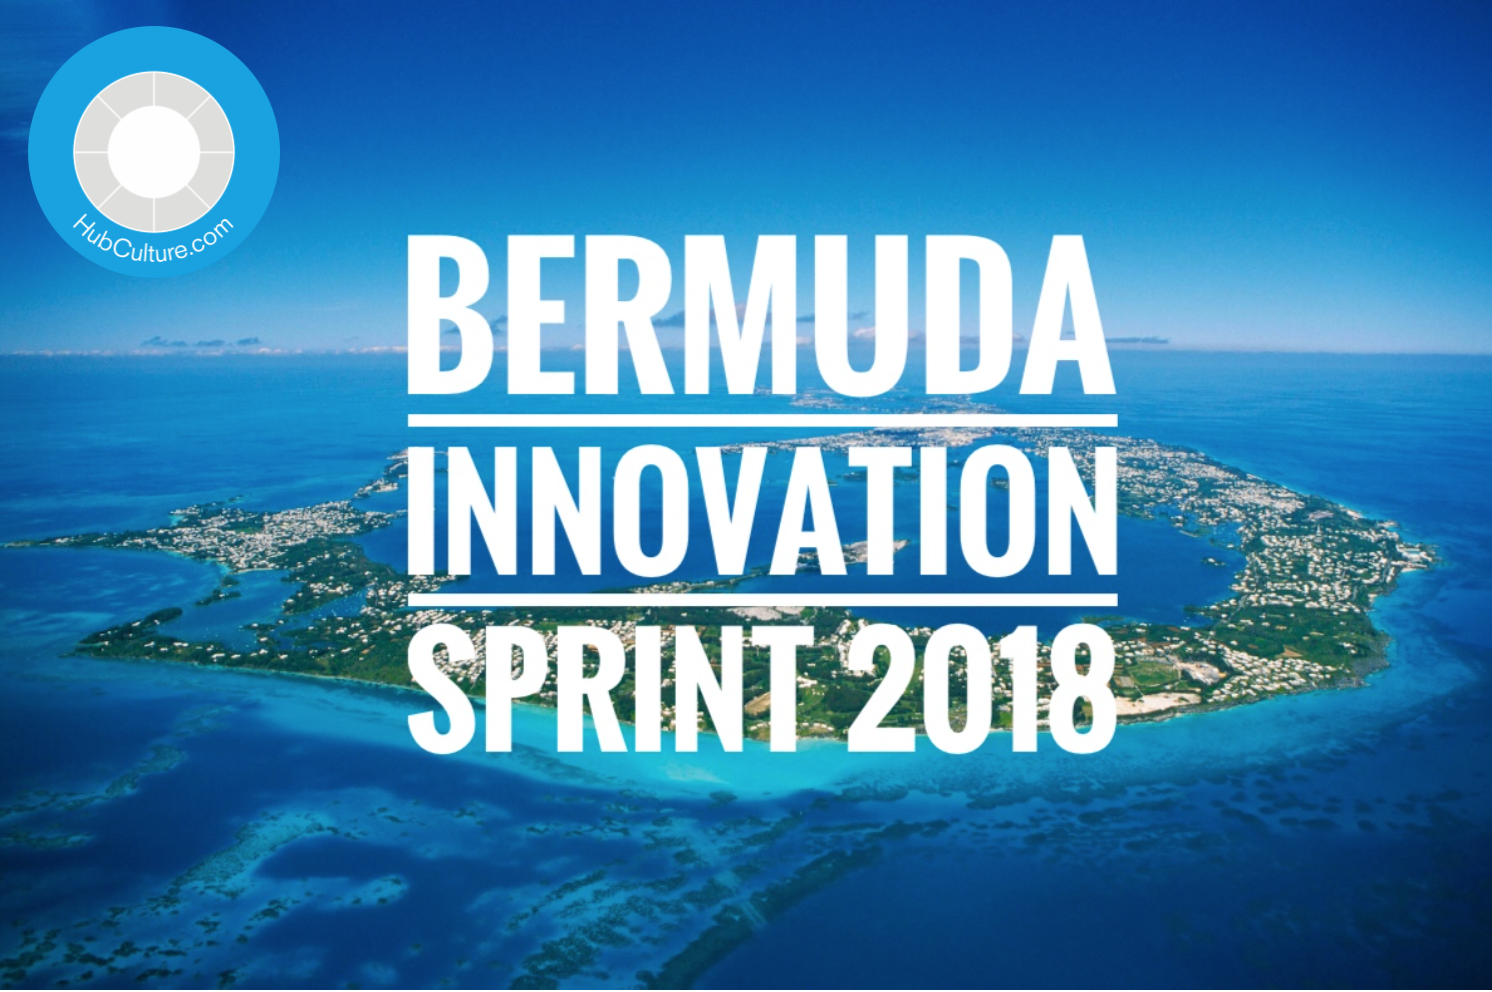 Highlights from the 2018 Bermuda Innovation Sprint